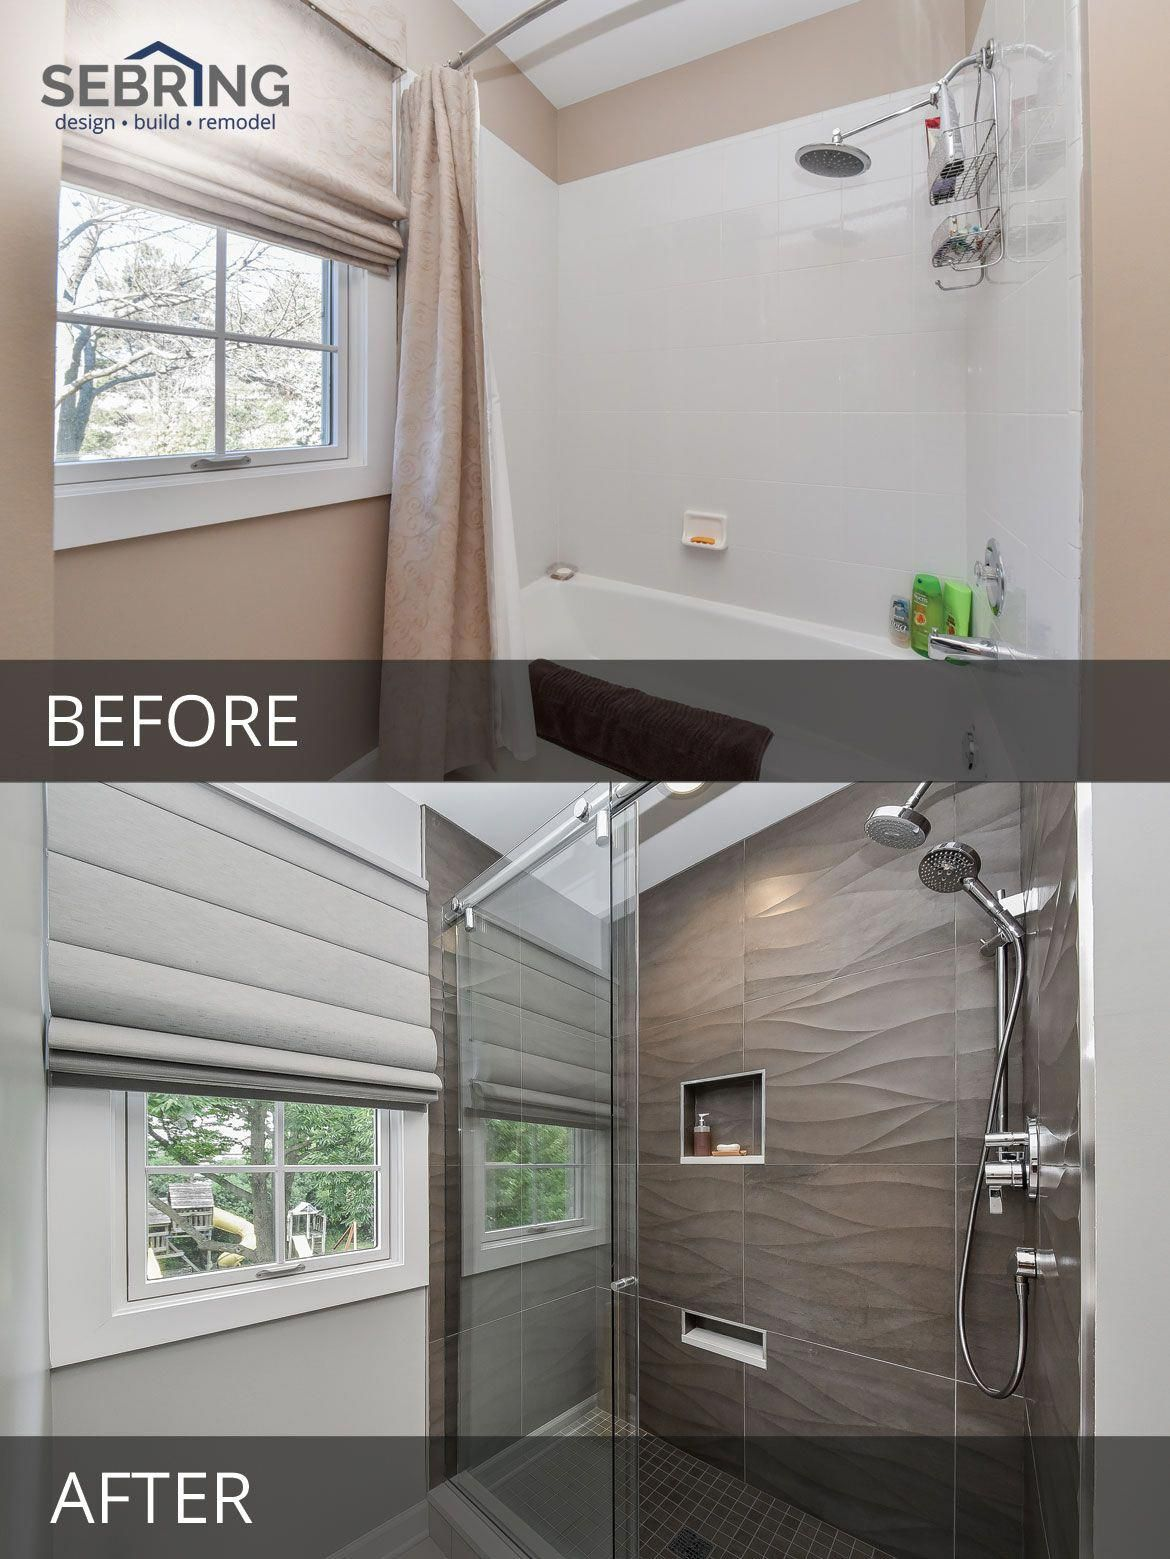 Modern Naperville Hall Bath Before And After Pictures Sebring Design Build Homeremodelingpicture Budget Bathroom Remodel Small Remodel Bathroom Before After